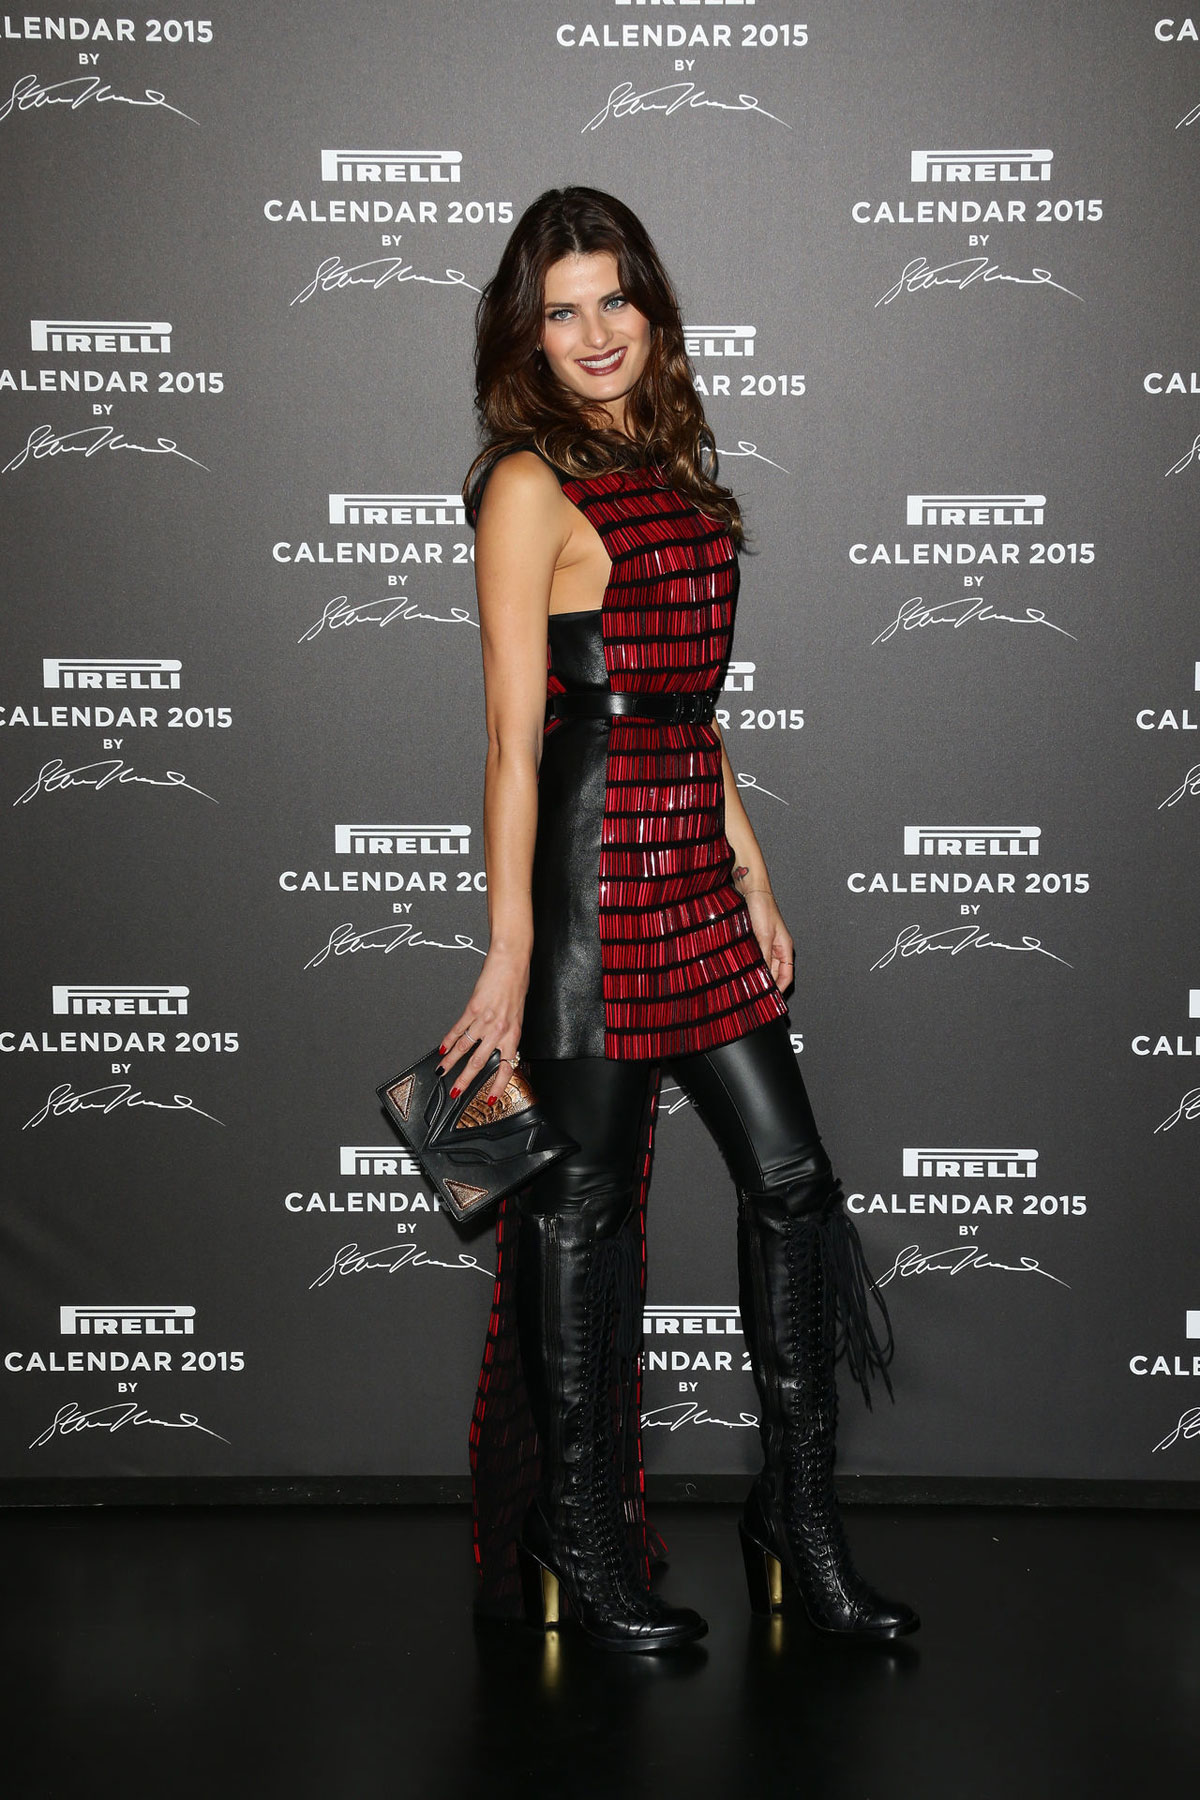 Isabeli Fontana attends the 2015 Pirelli Calendar Red Carpet